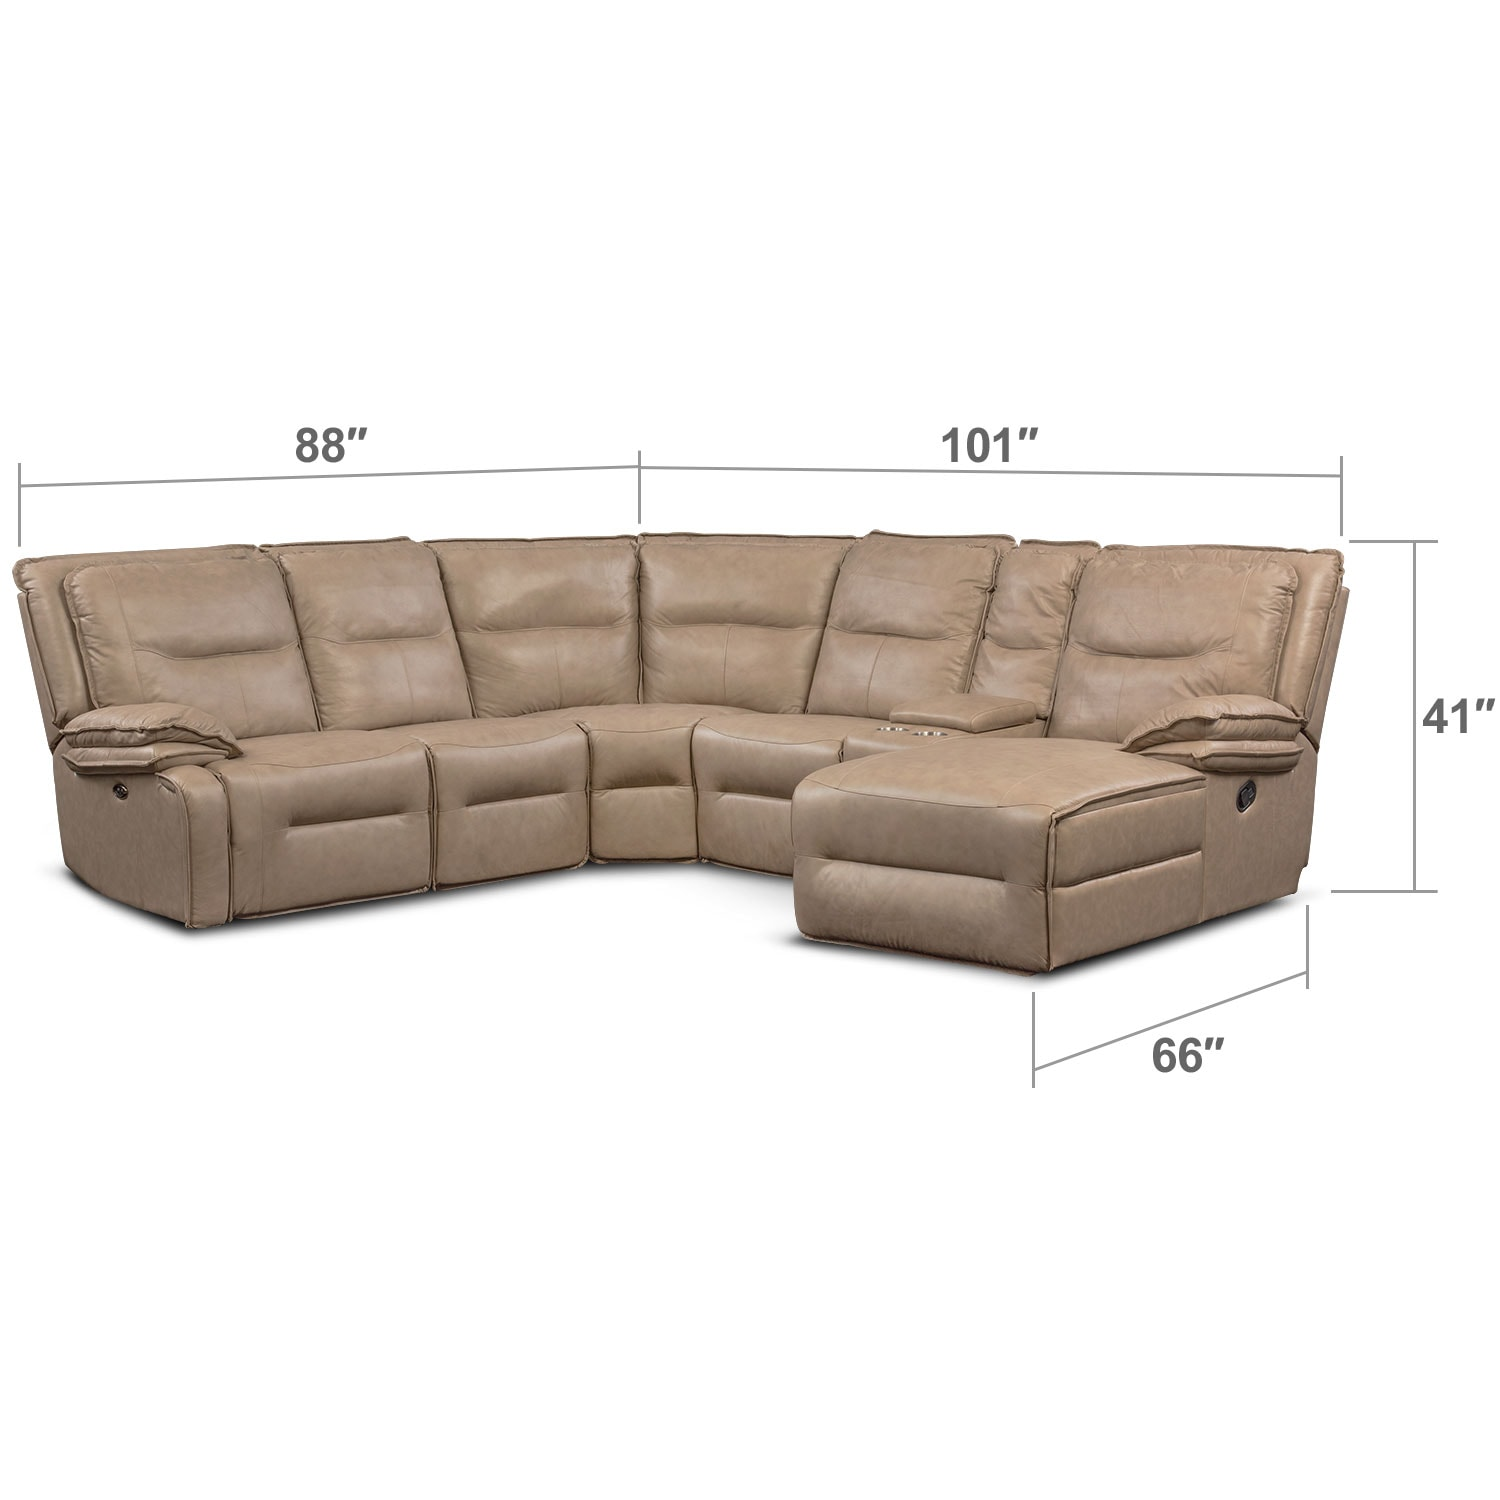 Living Room Furniture - Nikki 6-Piece Power Reclining Sectional with 1 Recliner and Right-Facing Chaise - Taupe